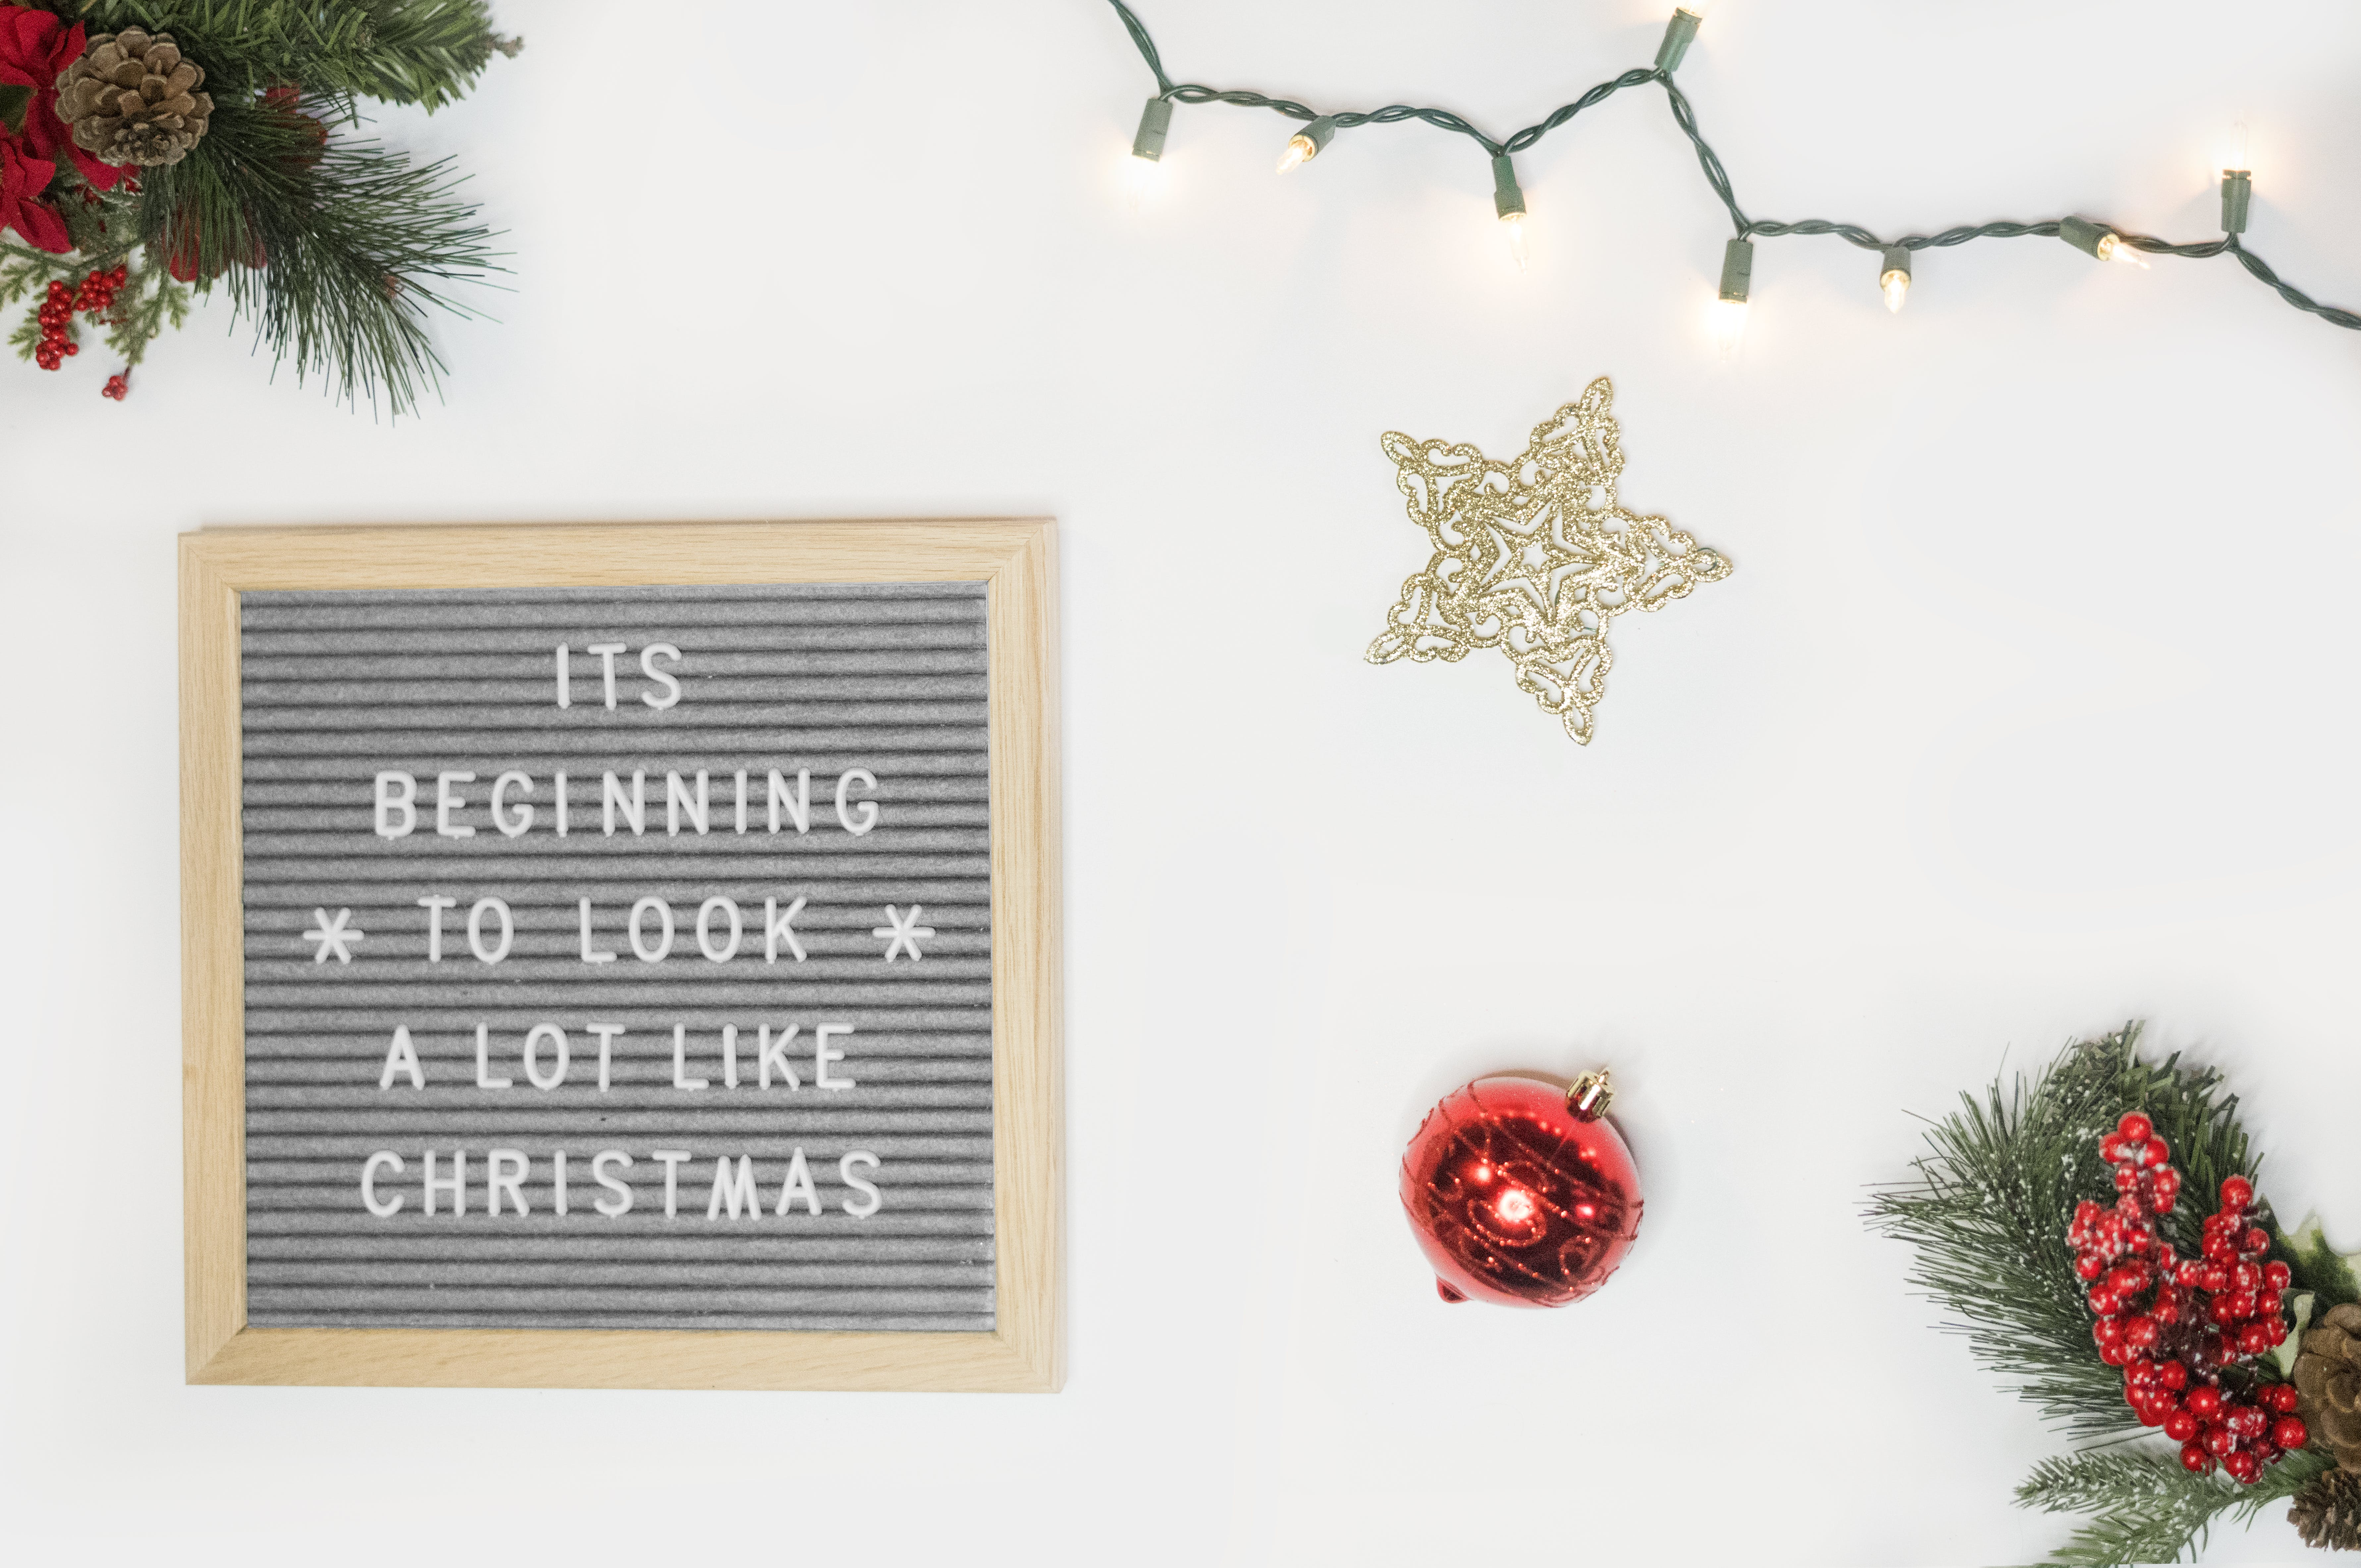 It's Beginning to Look a Lot Like Christmas Board Decor Beside Star and Red Bauble Flatlay Photography